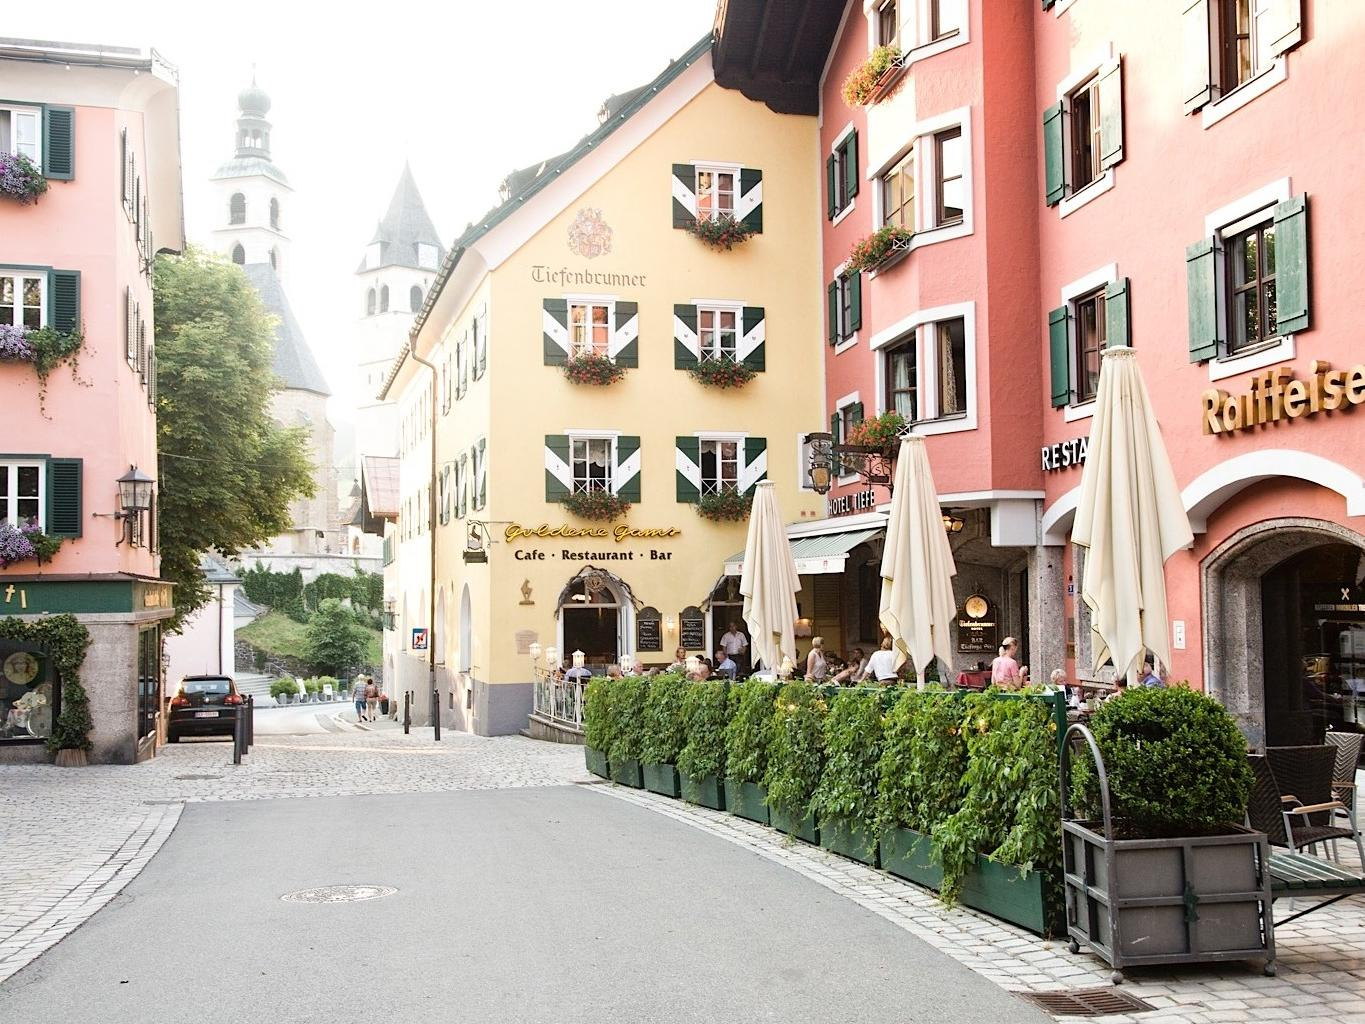 Individual Holiday Offer at Tiefenbrunner Hotel in Kitzbühel, Austria